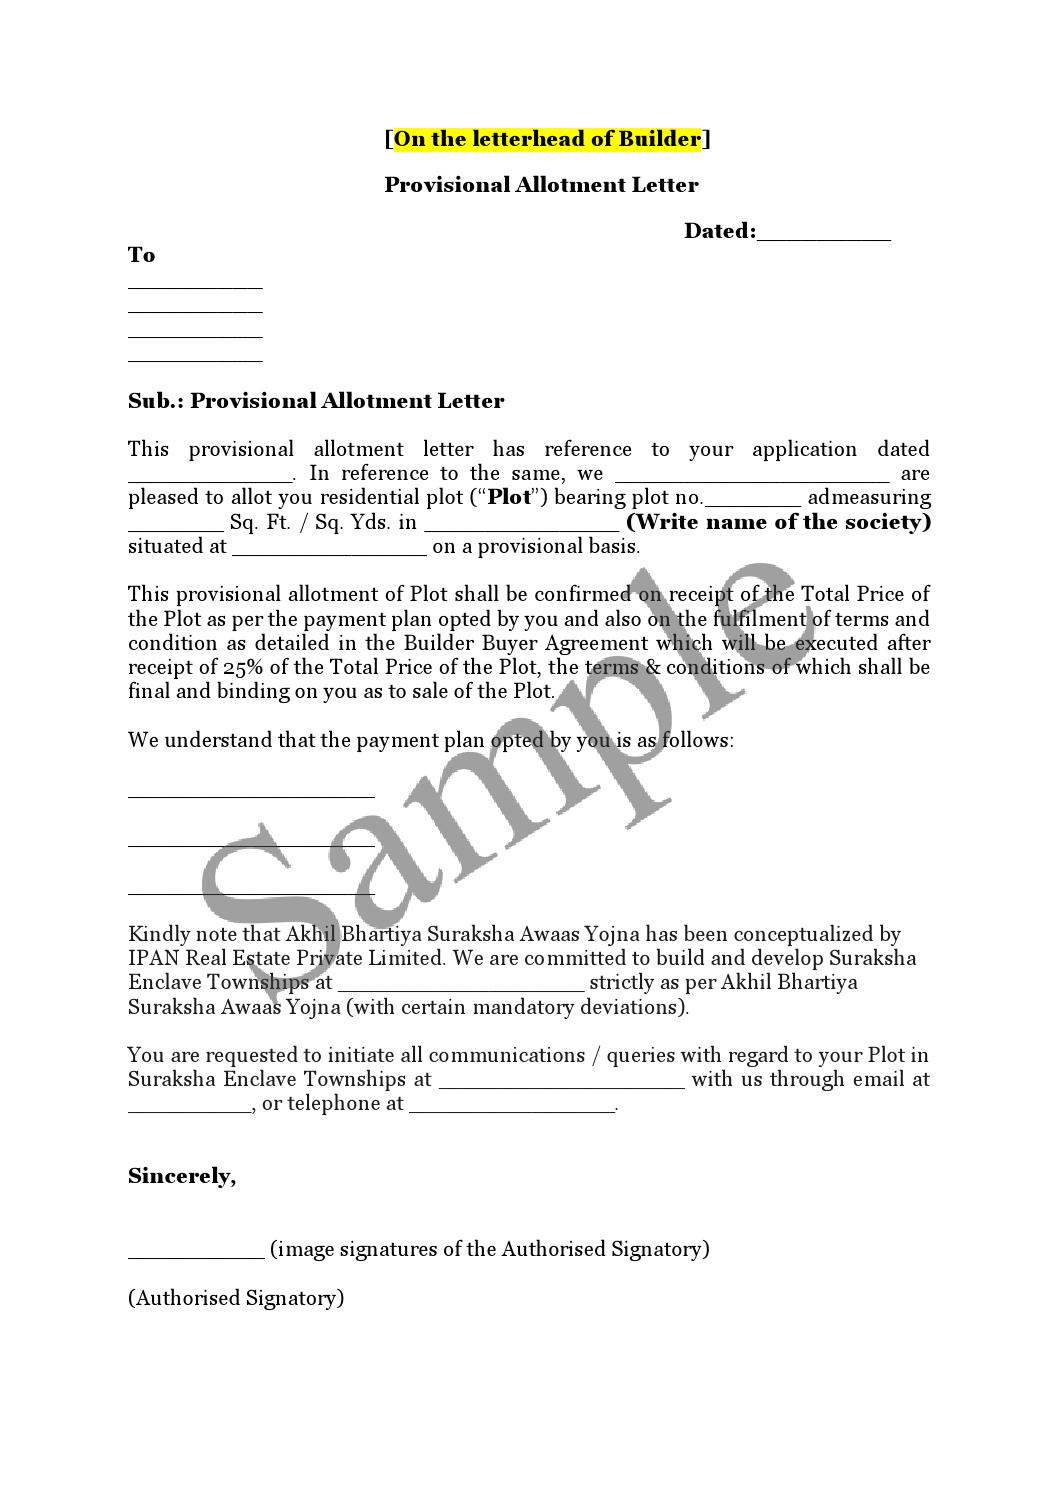 Sample Provisional Allotment Letter Final By Absay India